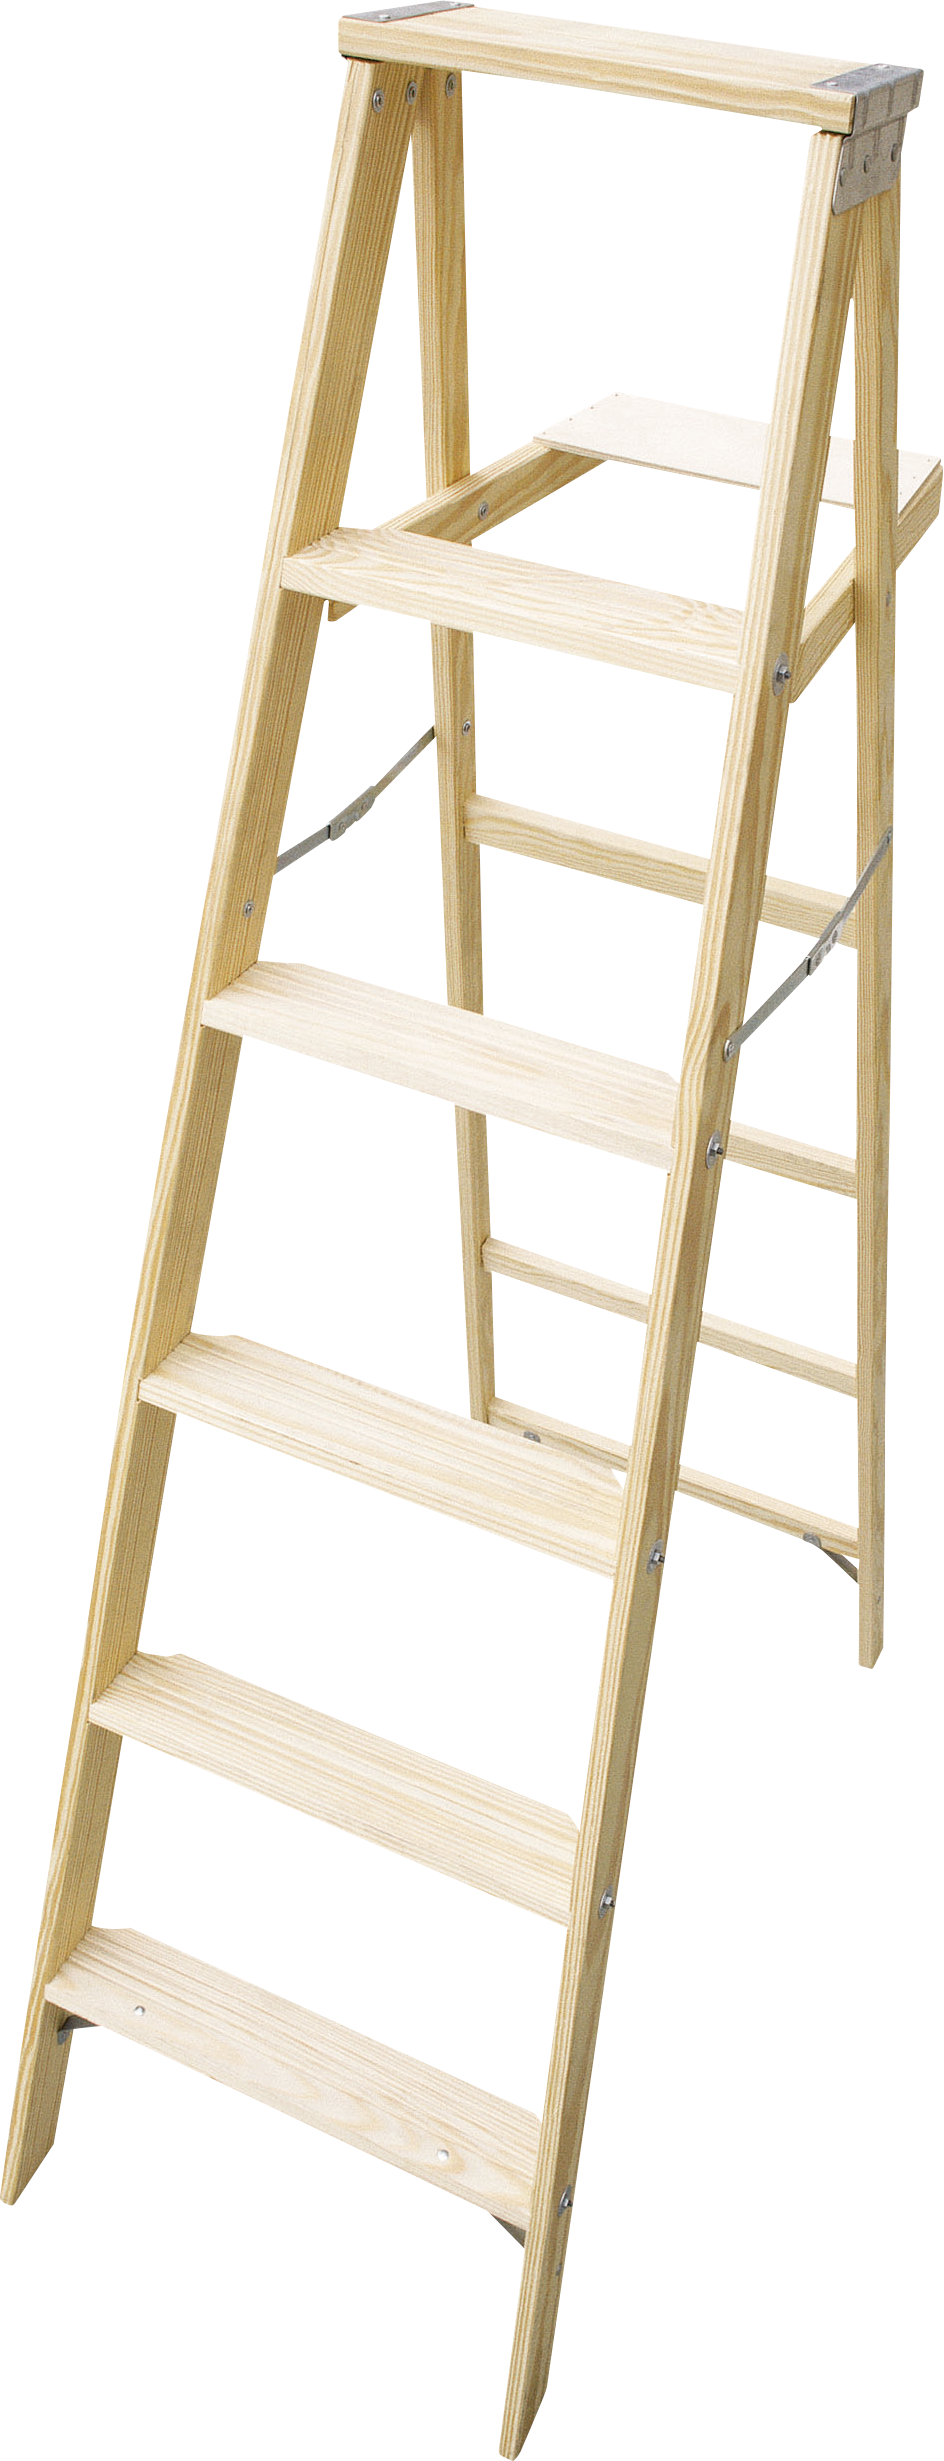 amazing wooden png. Ladder clipart extension ladder